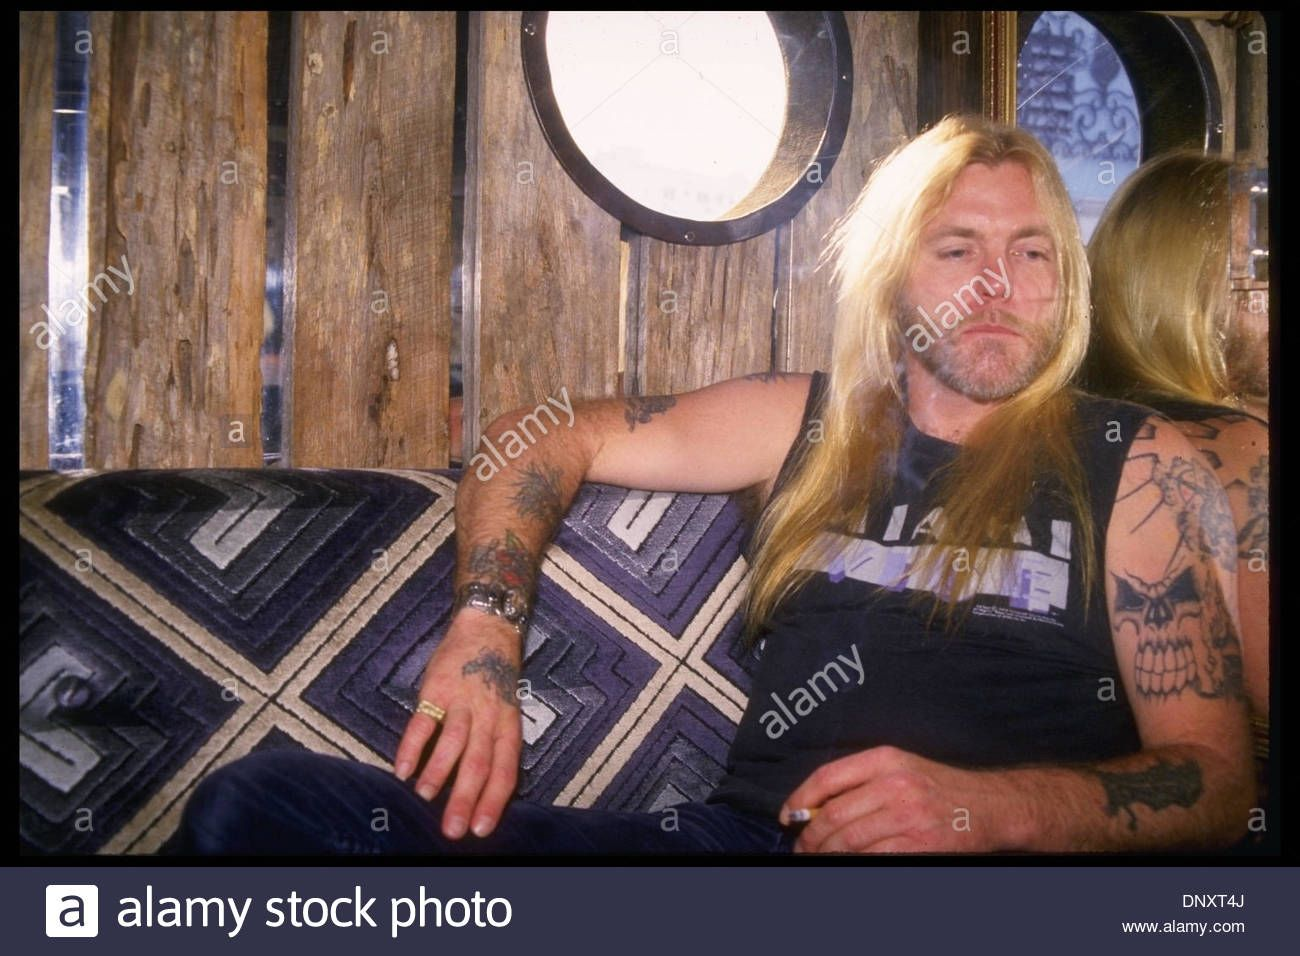 Image Result For Gregg Allman S Tattoos Allman Brothers Greggs Allman Brothers Band